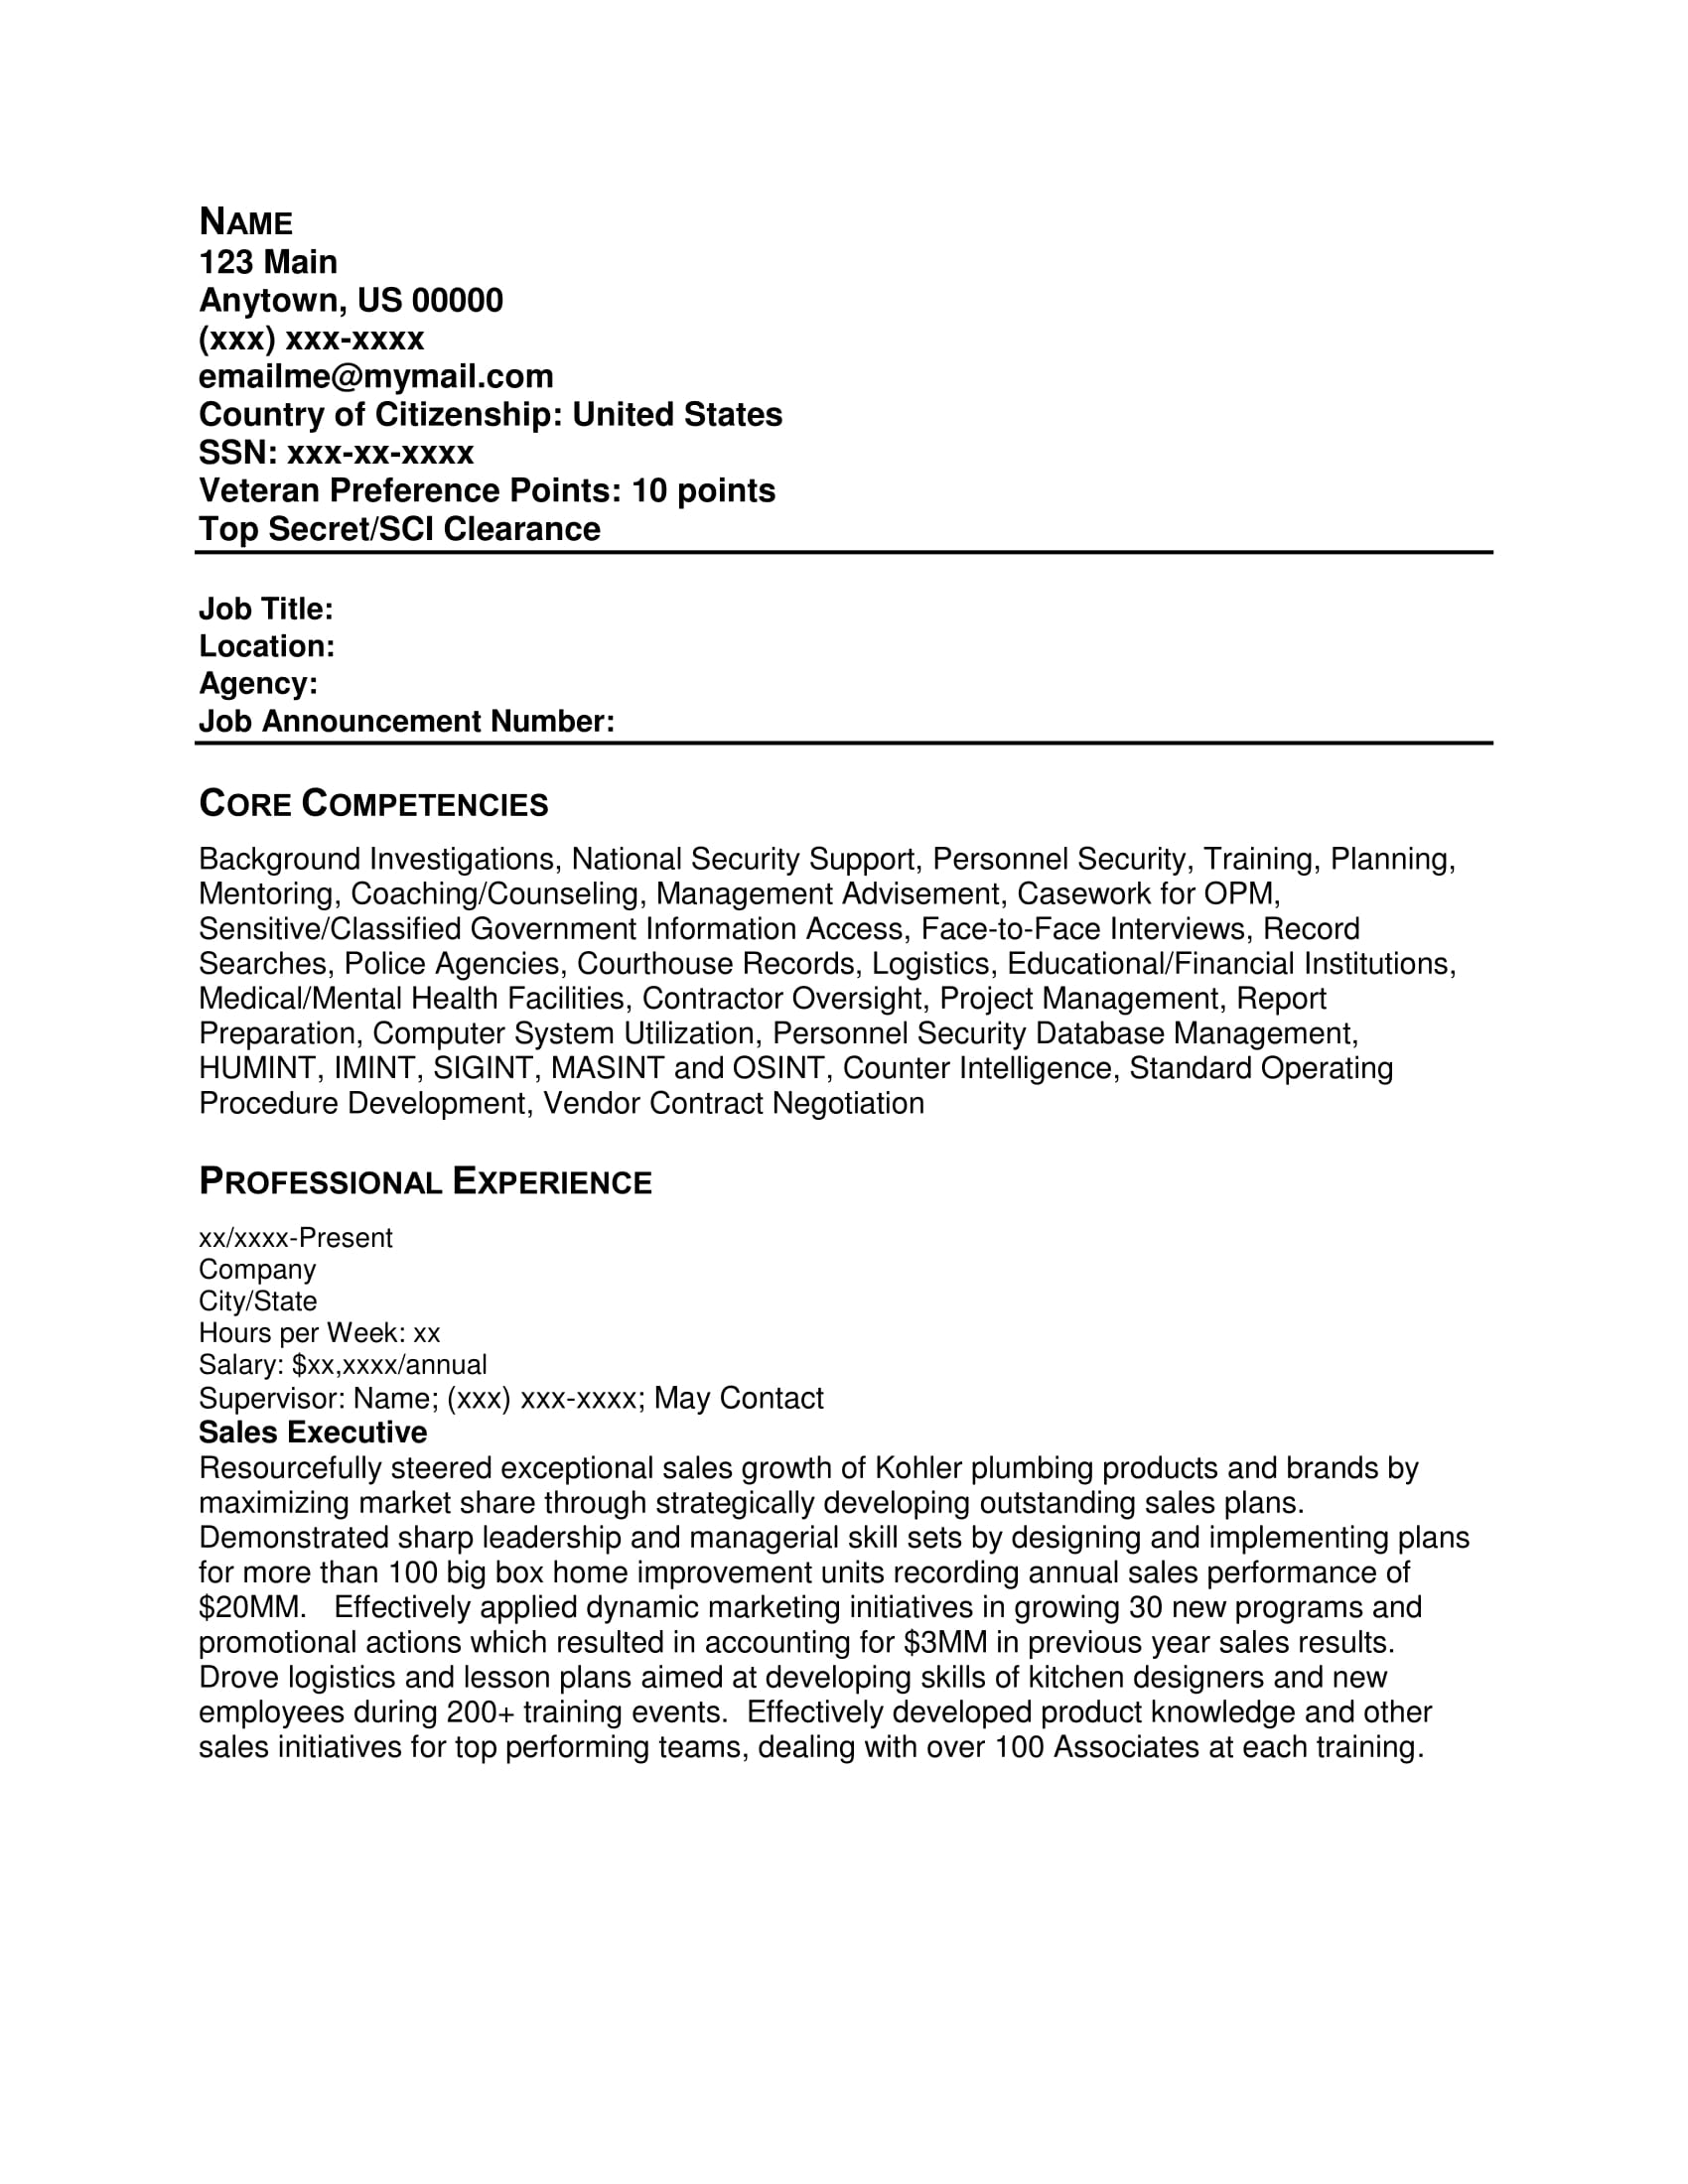 Free Resume Samples Resume Writing Group